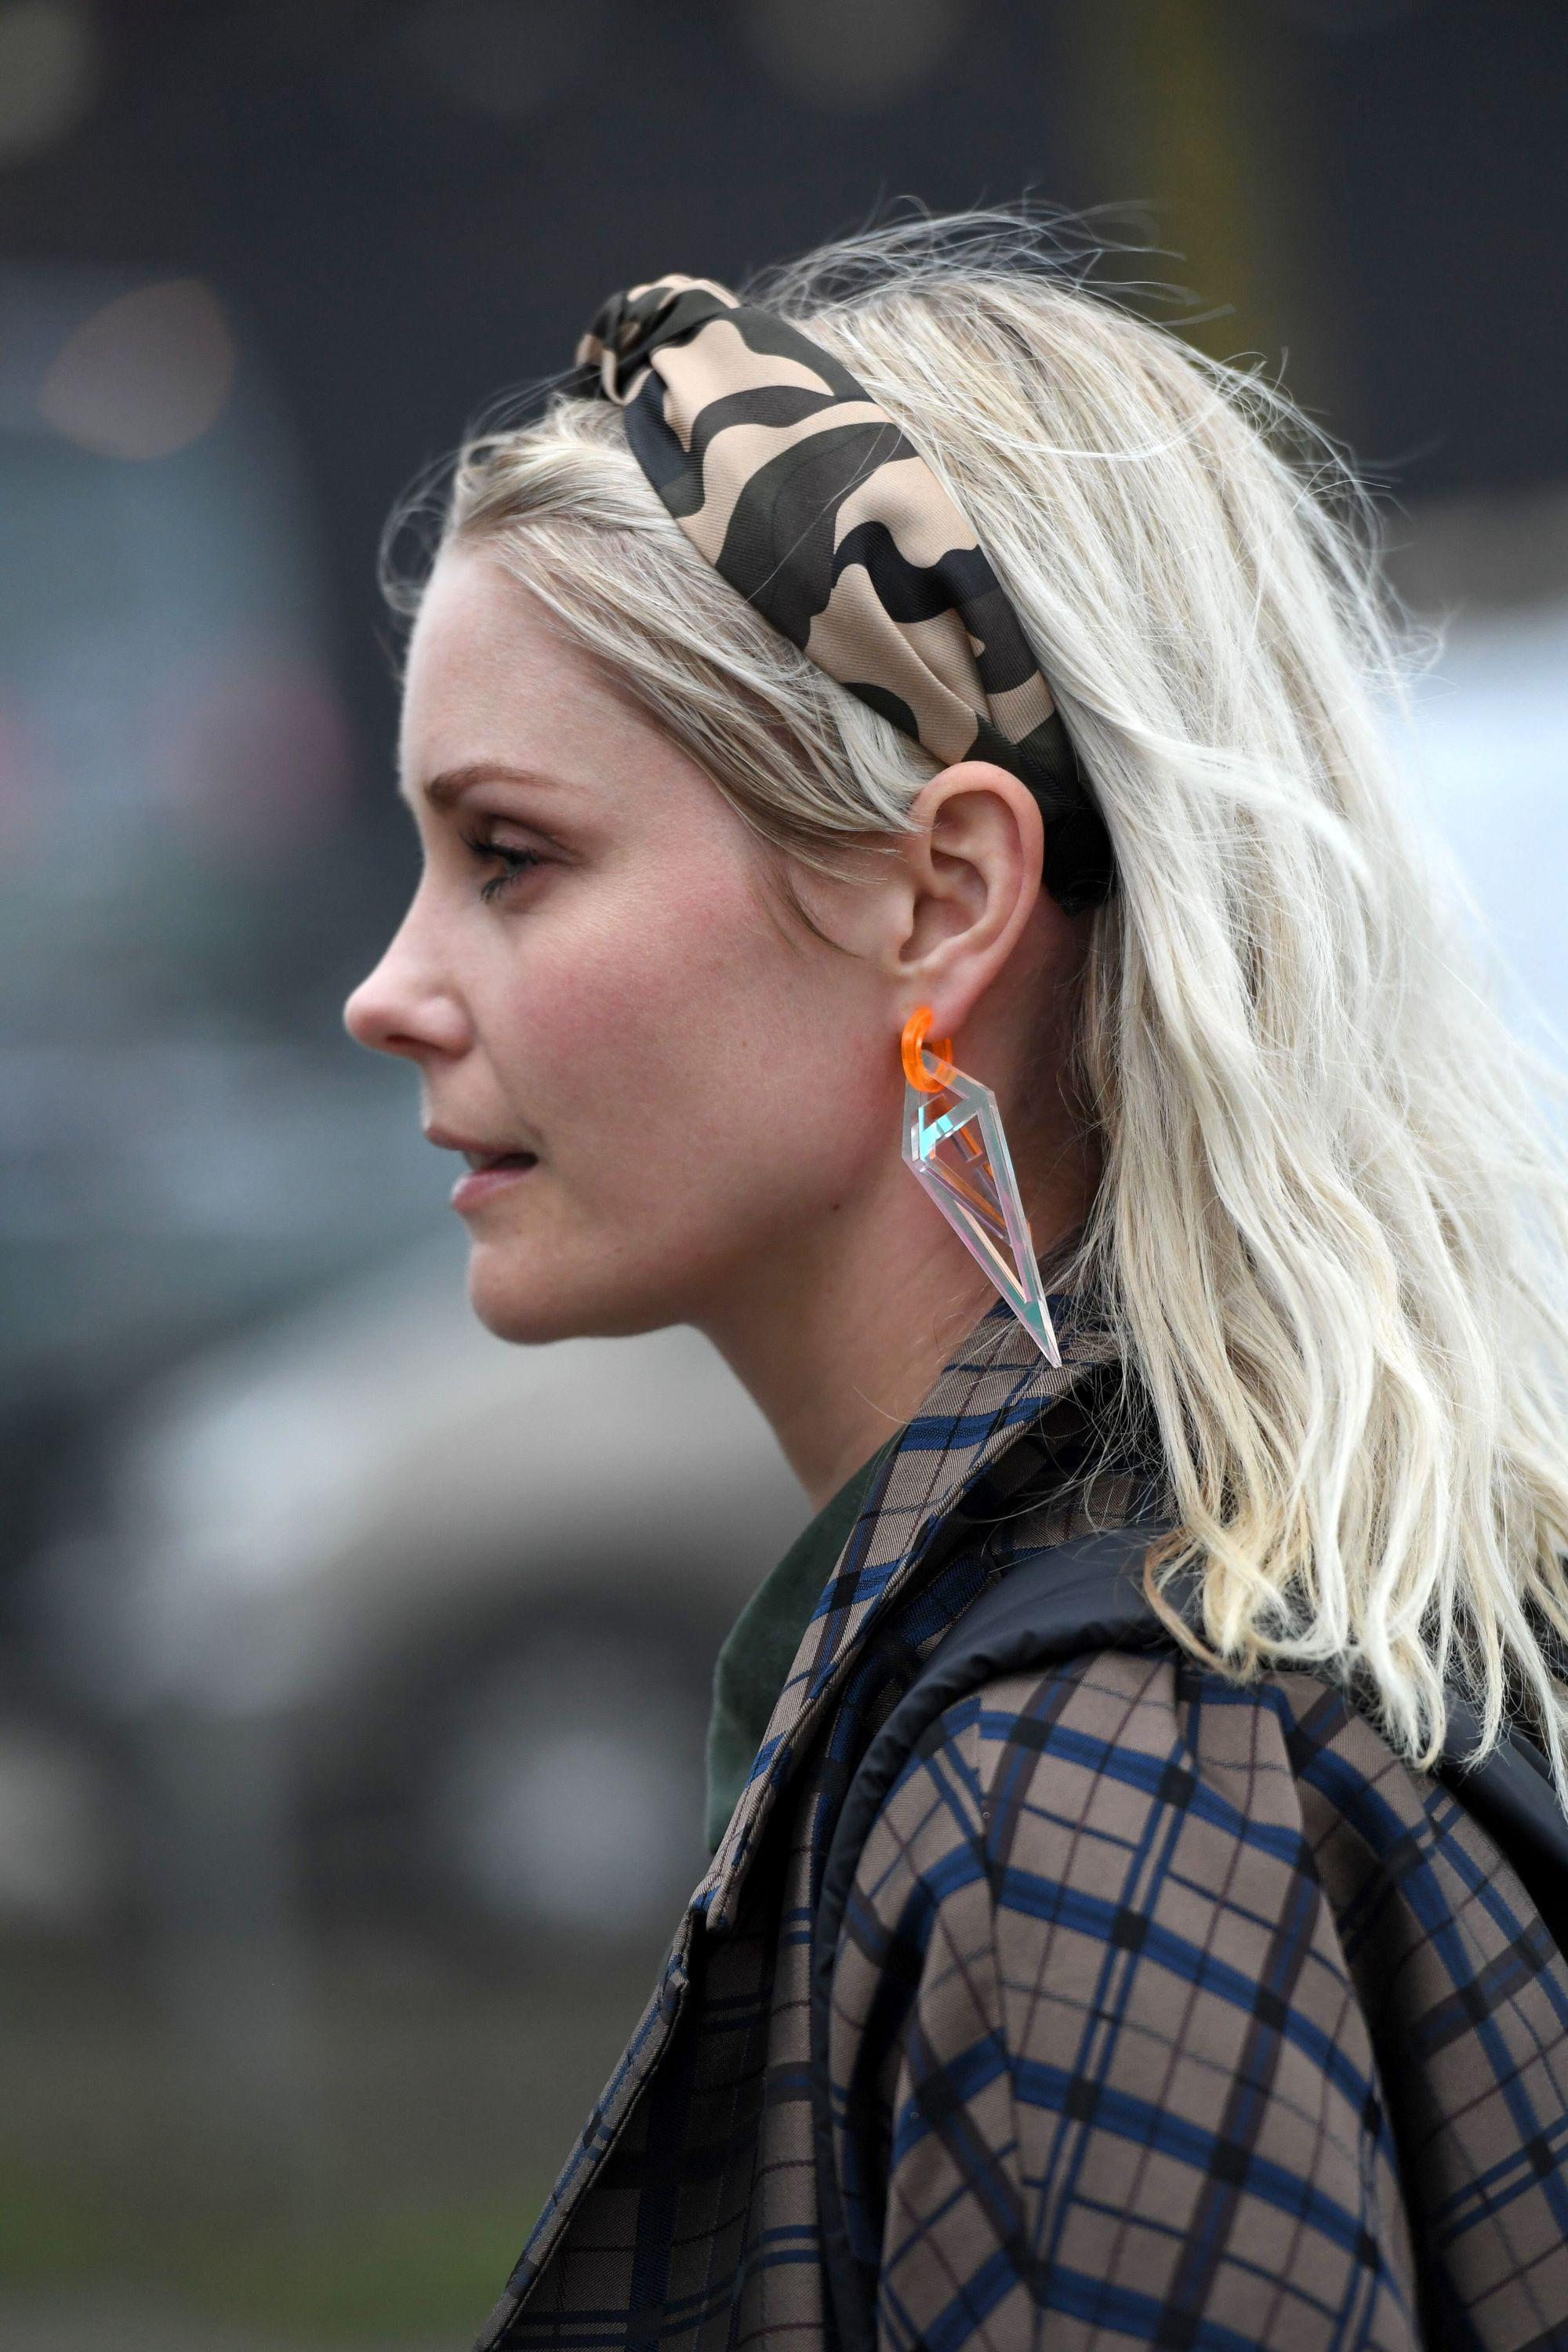 Spring haircuts: Side profile street style shot of a woman with mid length ash blonde hair with a camo leopard print headband